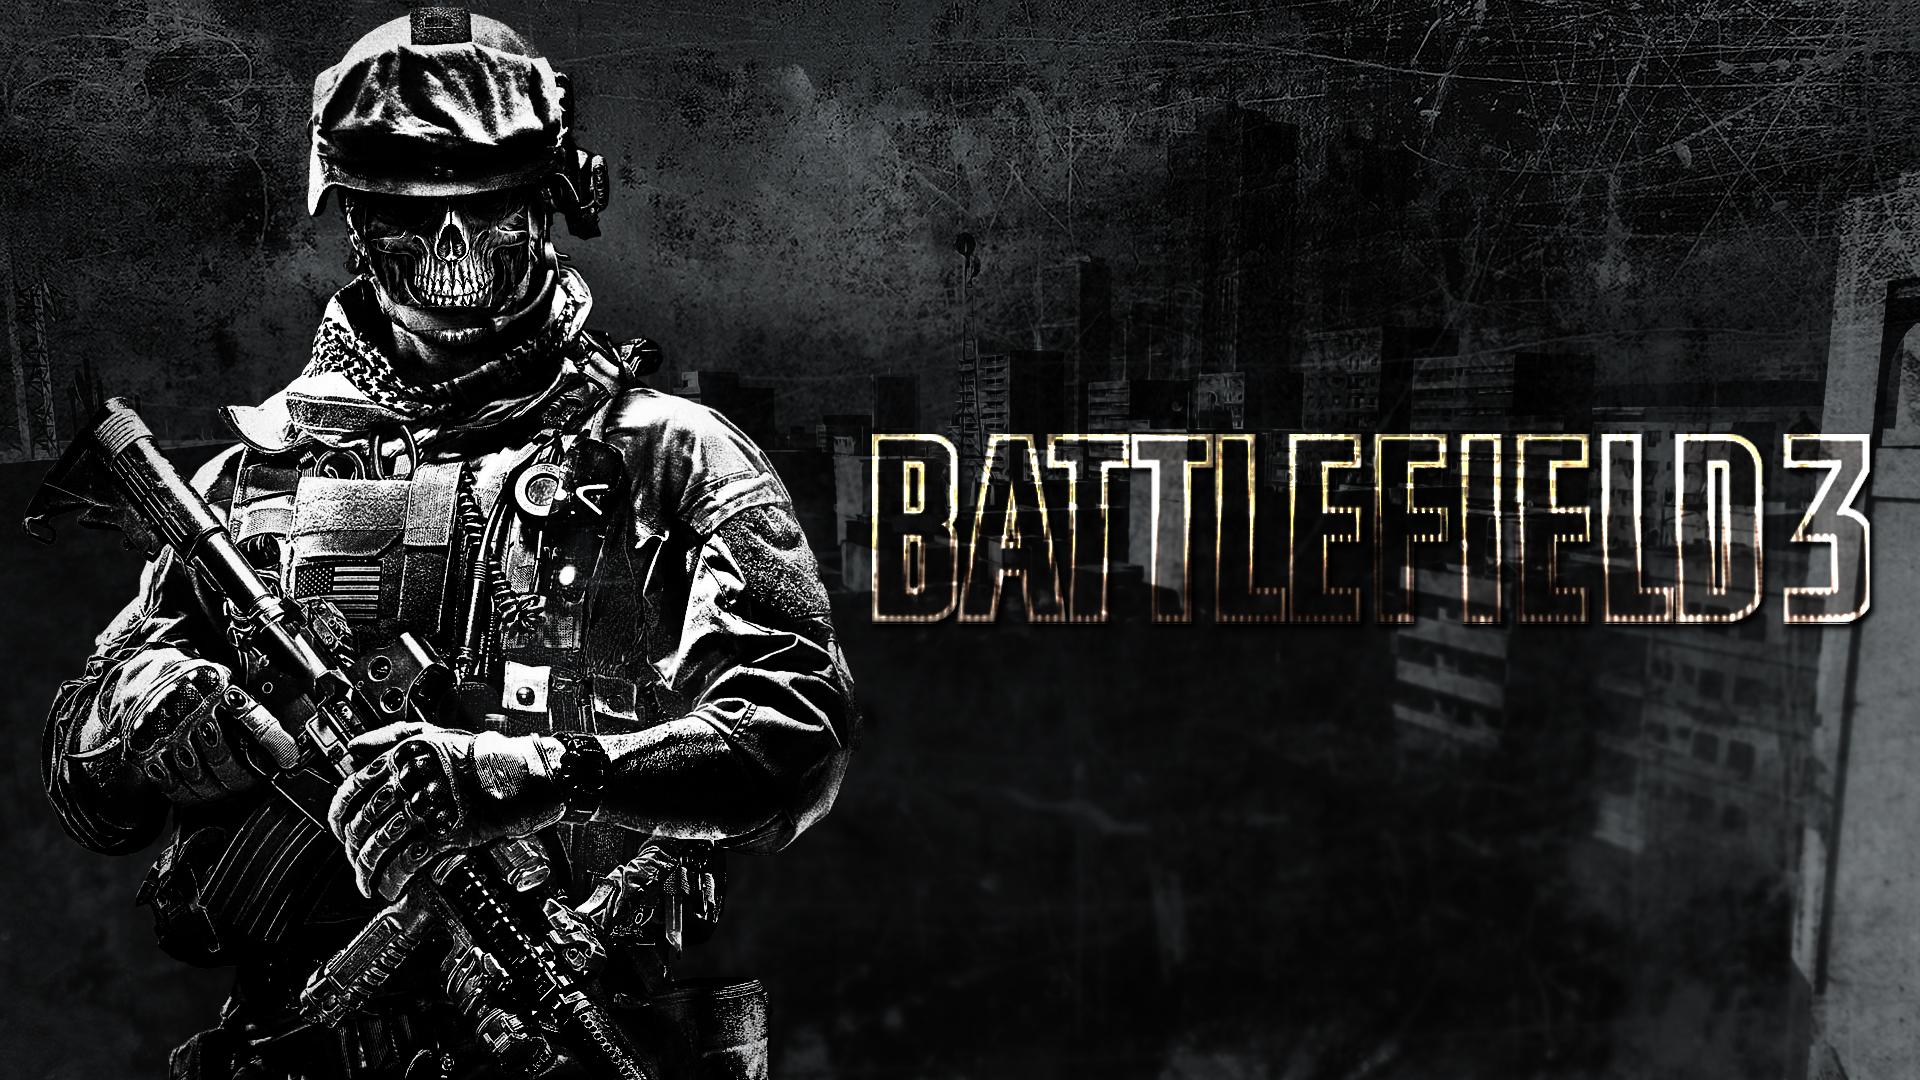 Battlefield Wallpaper Skull Battlefield 3 Wallpaper 2 by